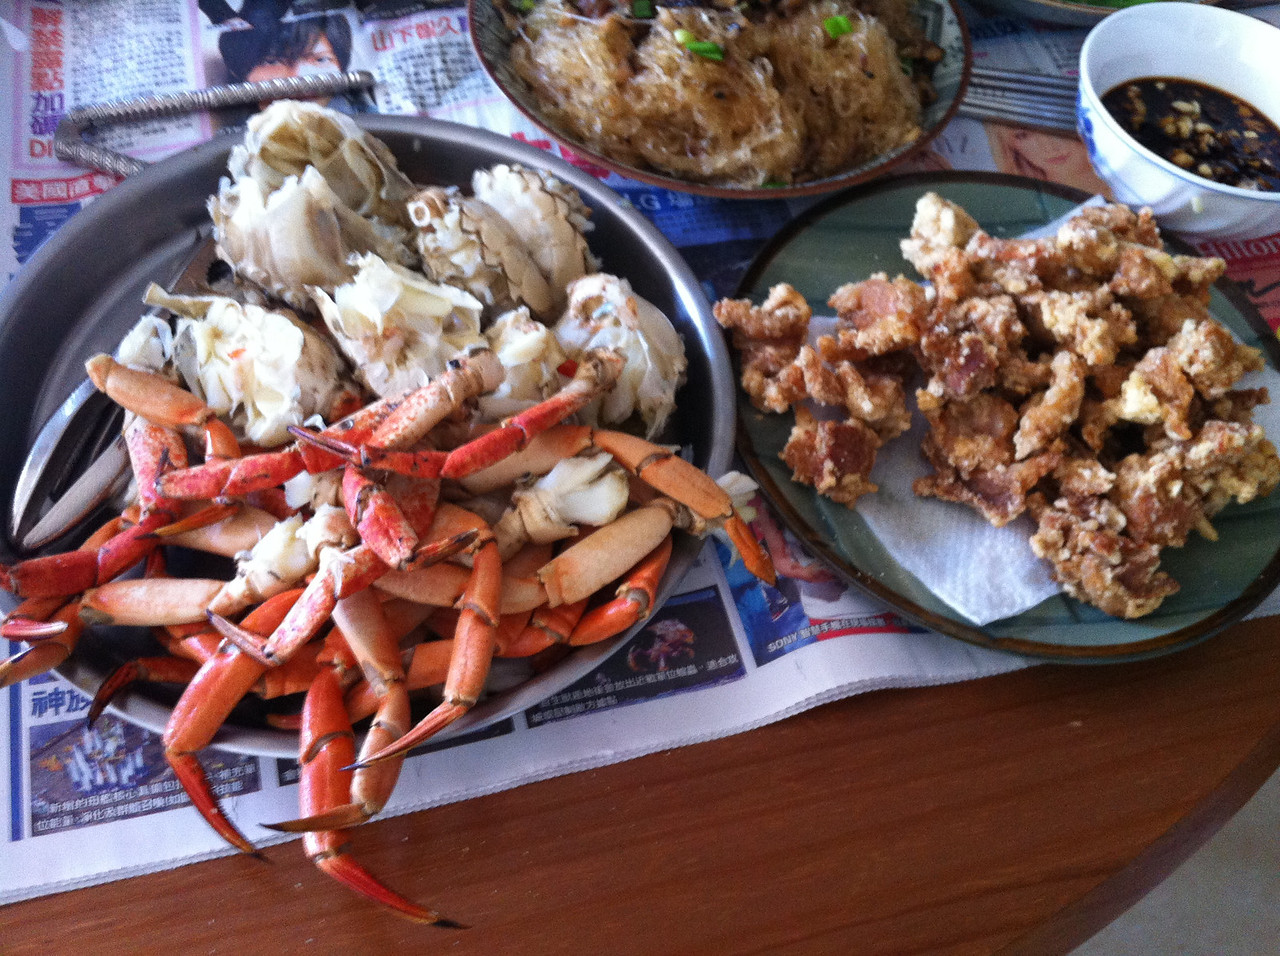 7/2/12, 2nd day in CA,  brunch at home, meals prepared by Dah Ger and Dah Sao..